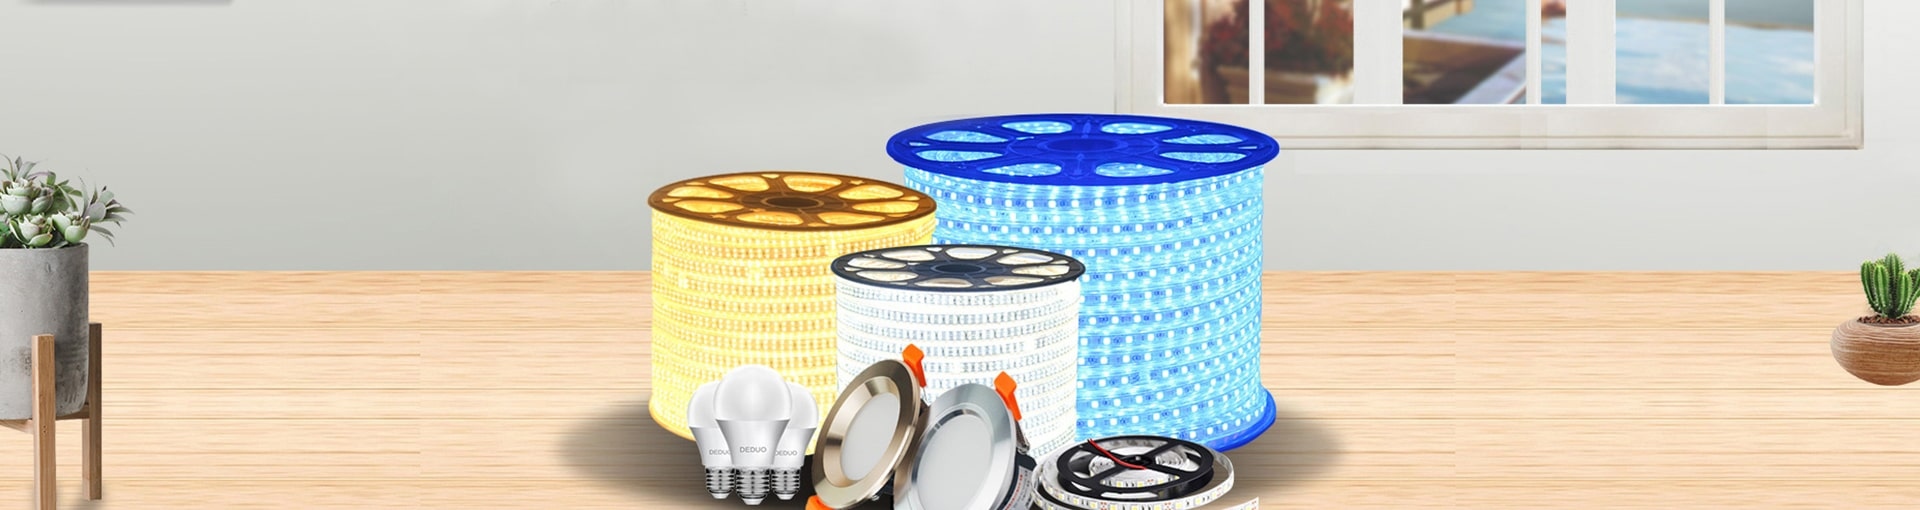 LED Strip Lights Banner